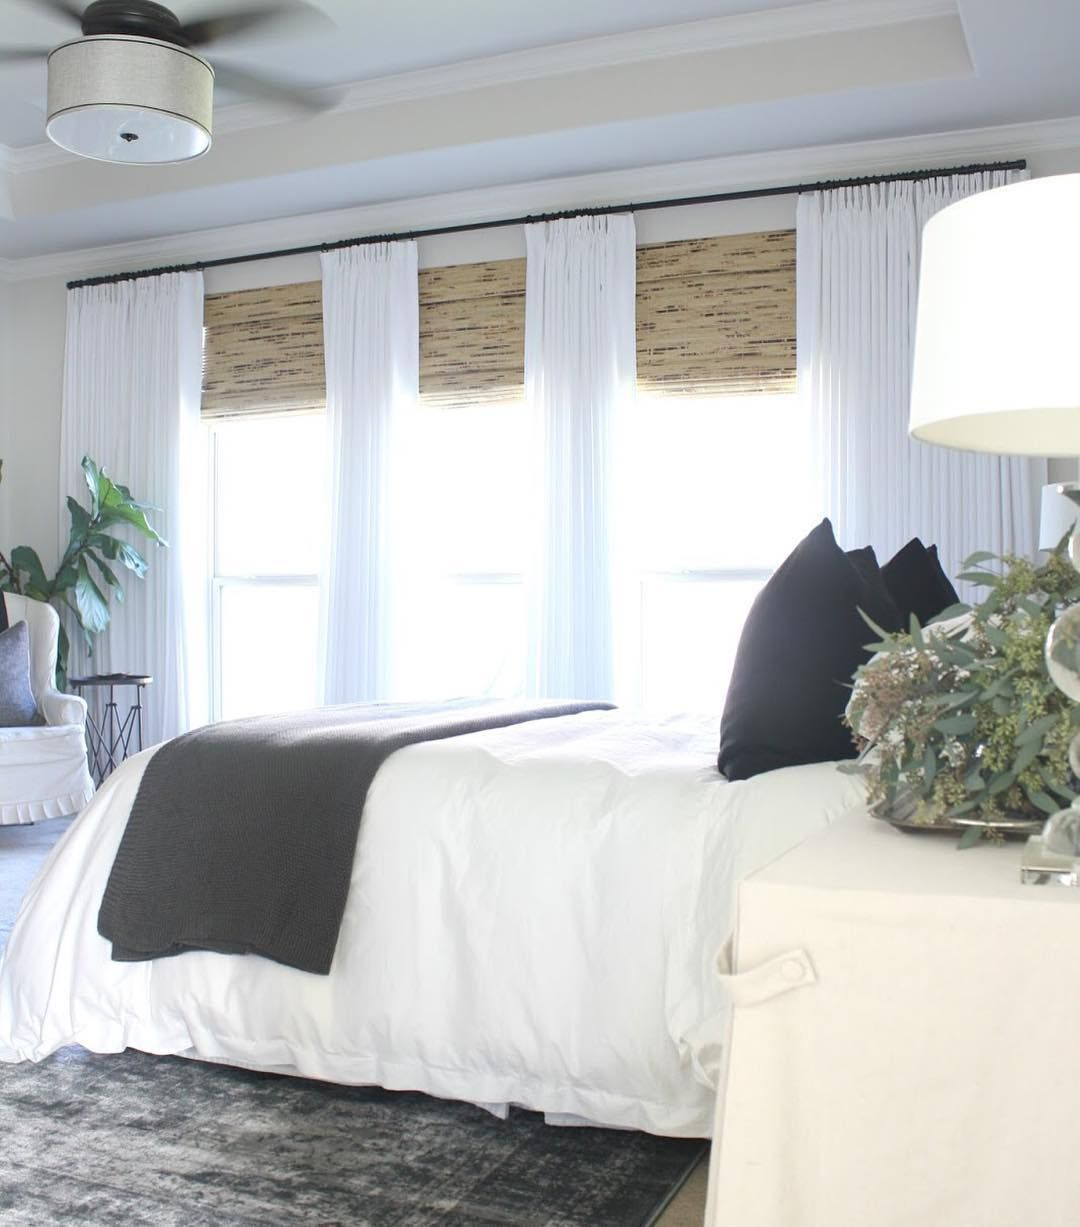 3 window bedroom  top  window covering trends on instagram  the finishing touch